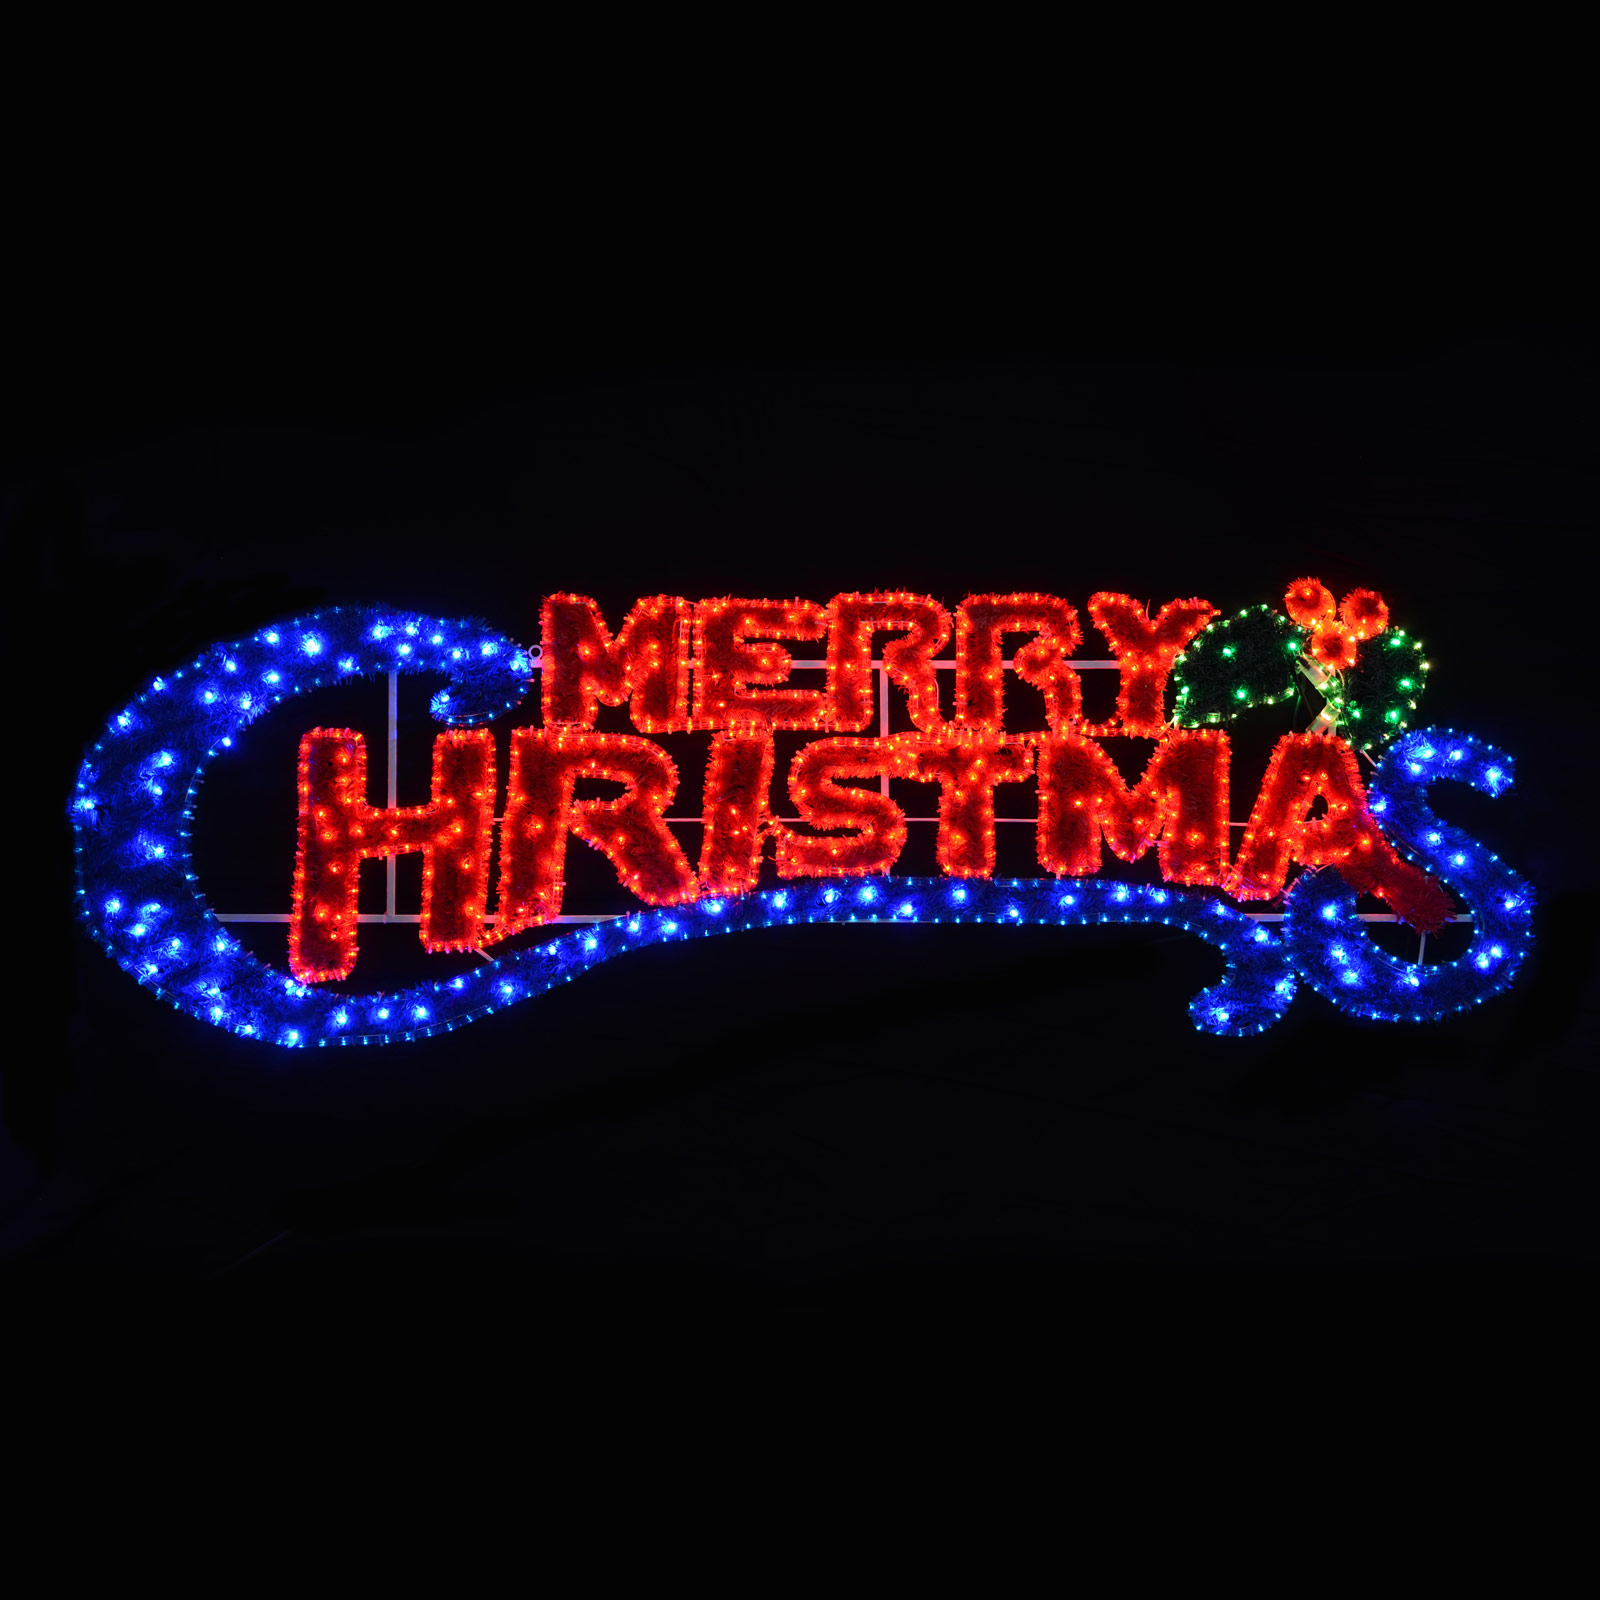 Large led rope flashing blue red light merry christmas for Large outdoor led christmas decorations